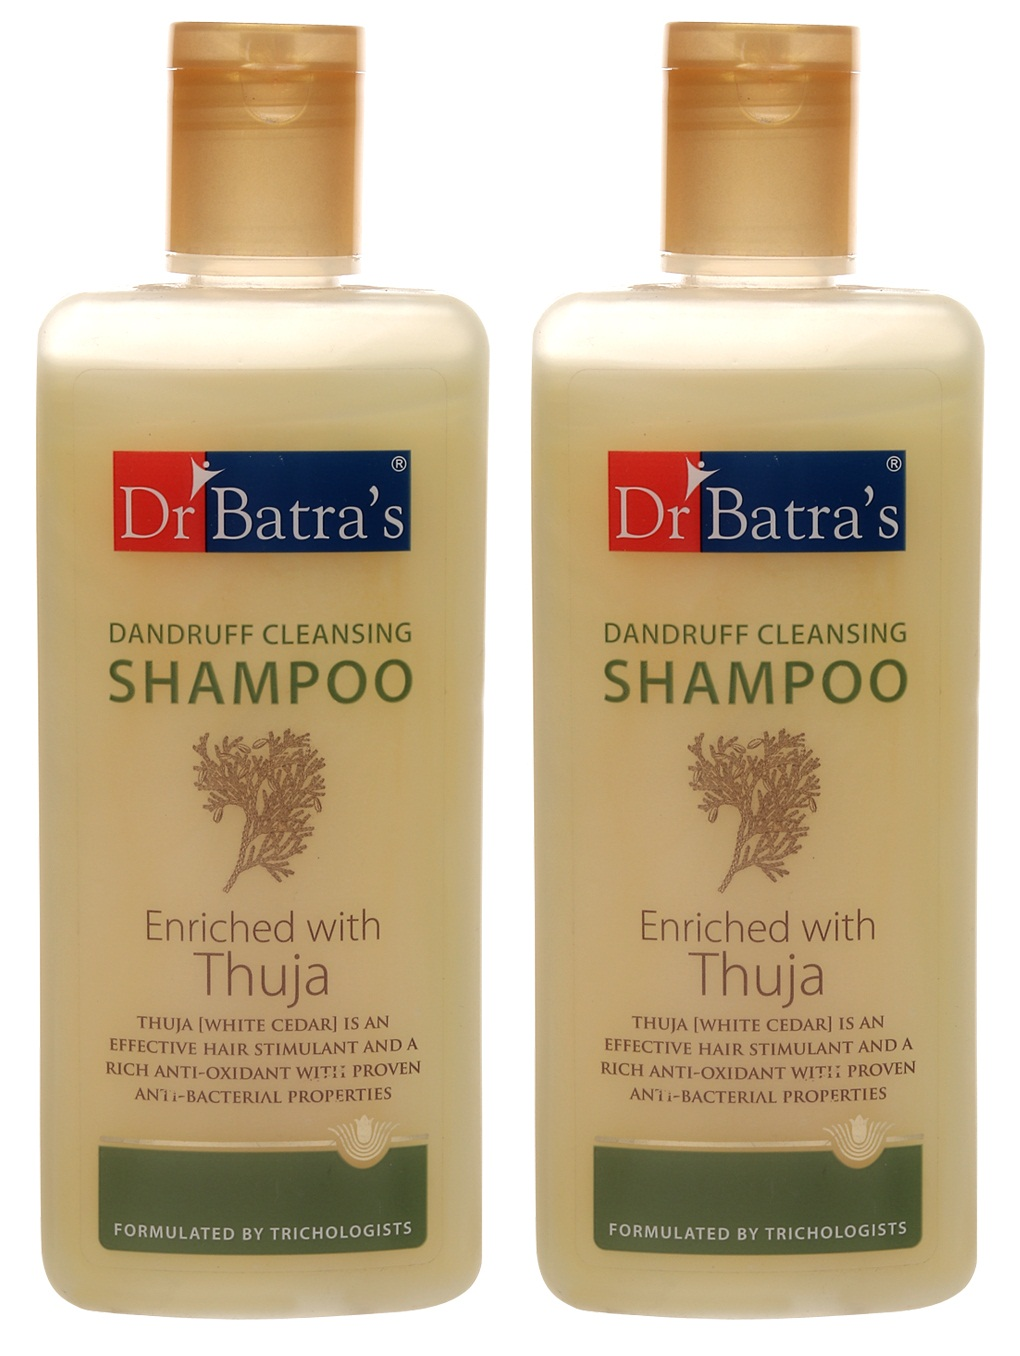 Dr Batra's | Dr Batra's Dandruff Cleansing Shampoo Enriched With Thuja - 200 ml (Pack of 2)